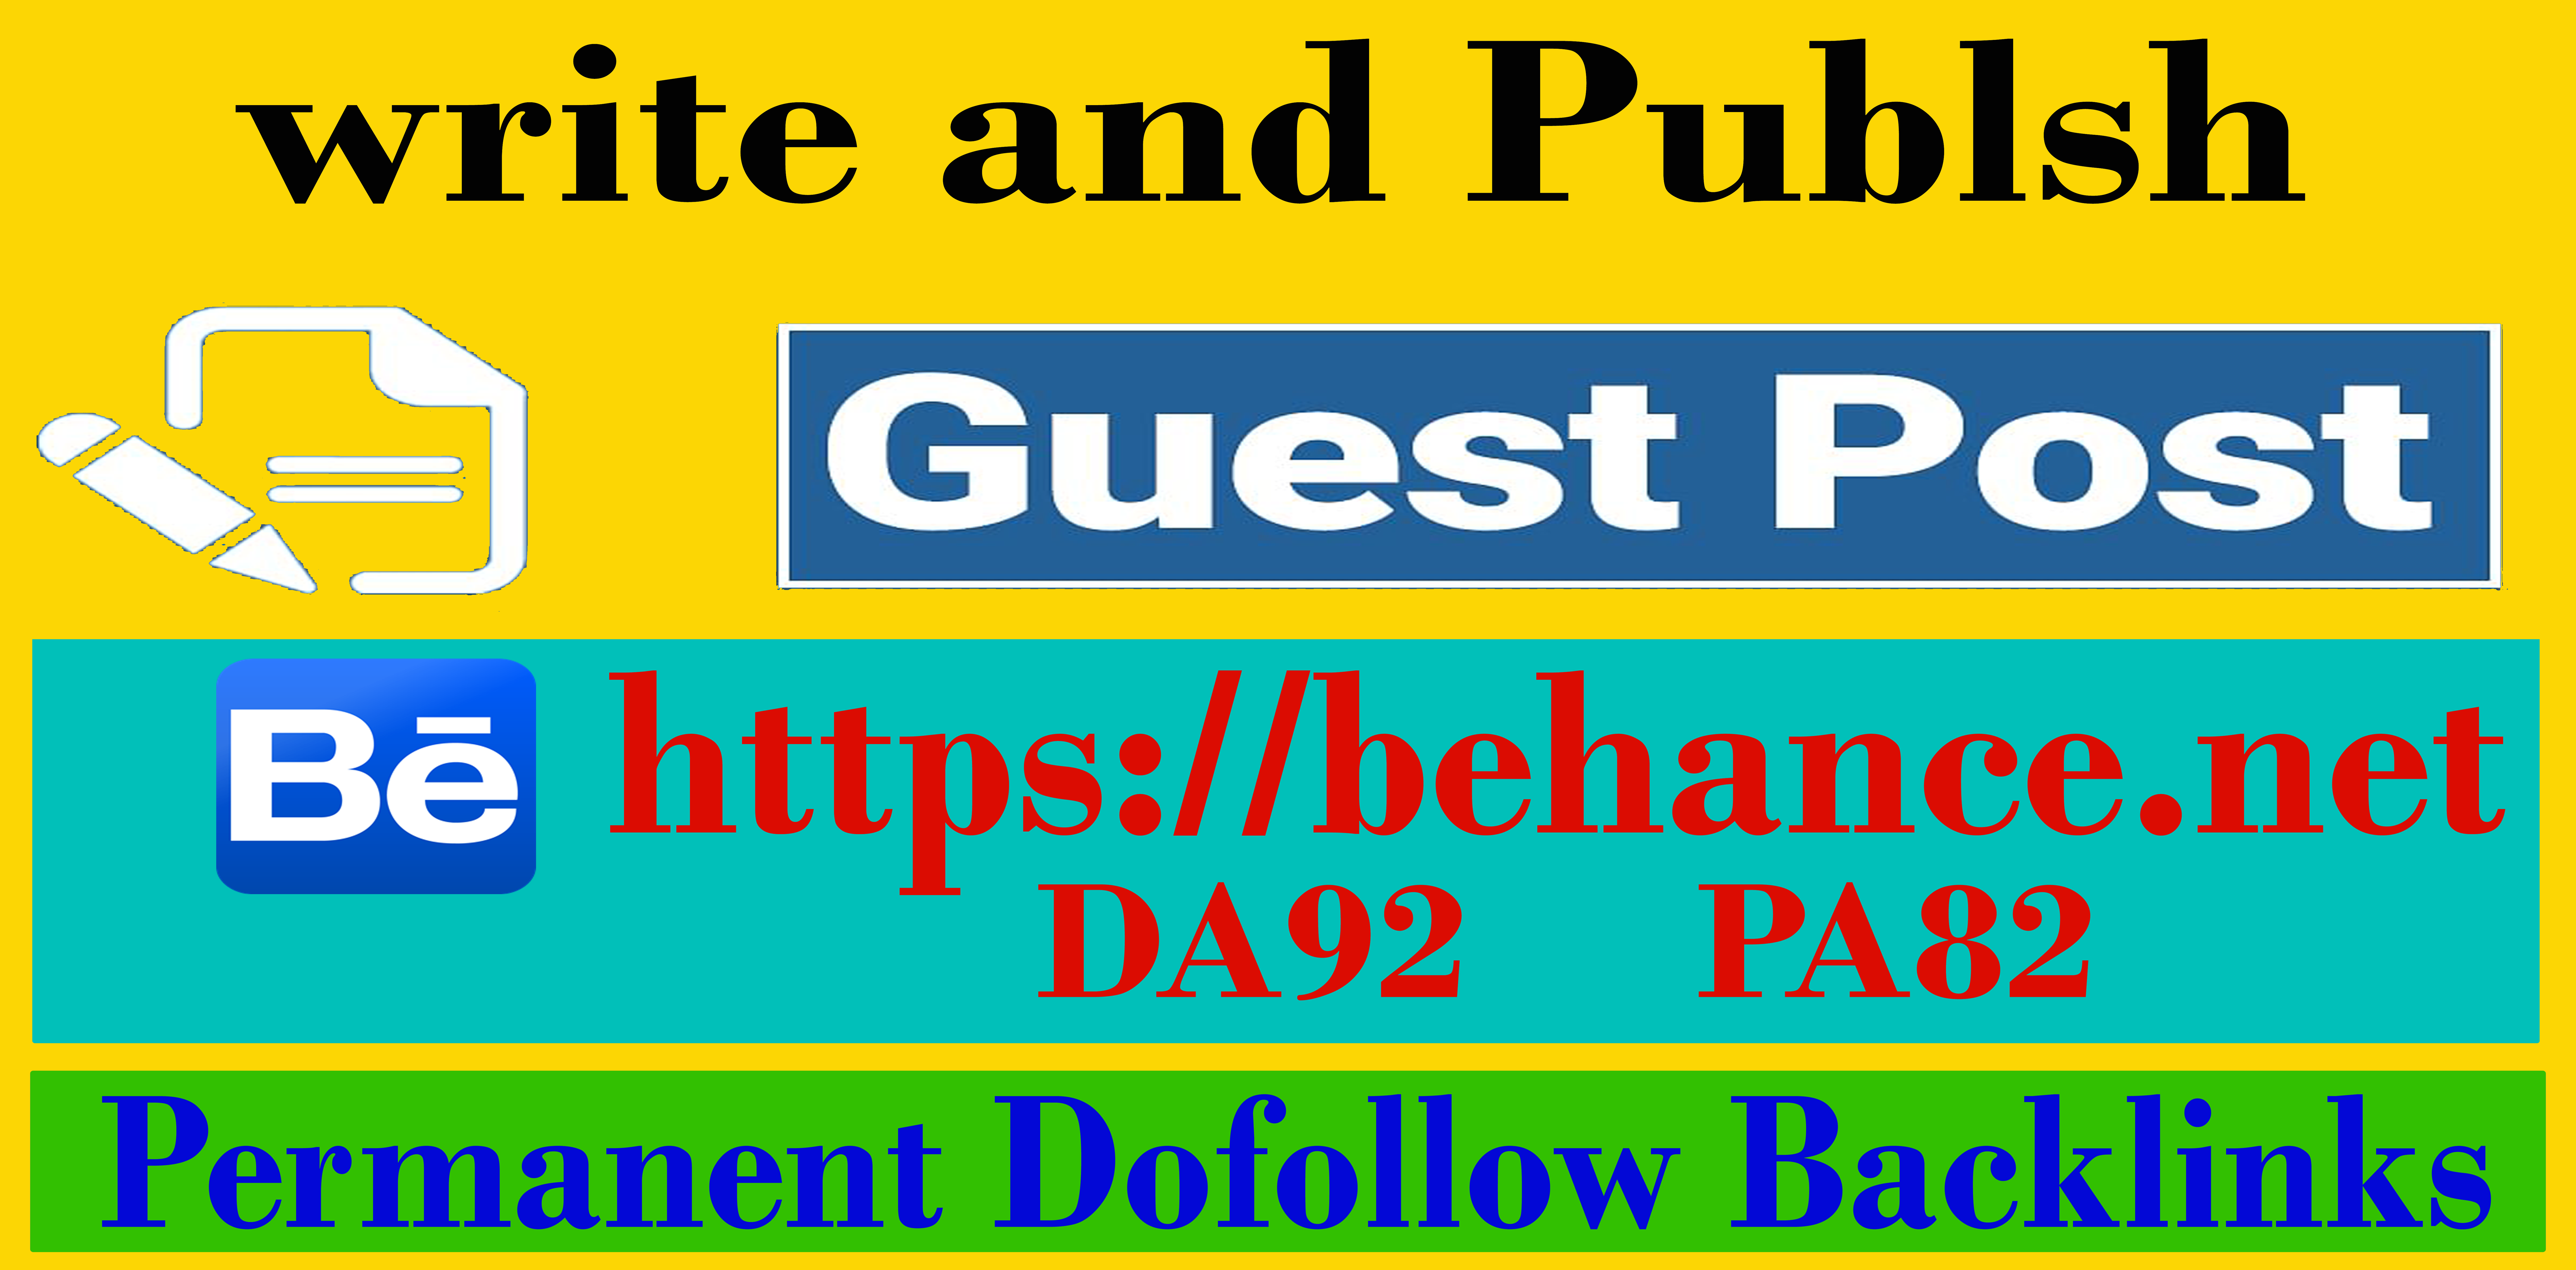 I can Write and and publish dofollow high quality guest post on Behance. net DA92